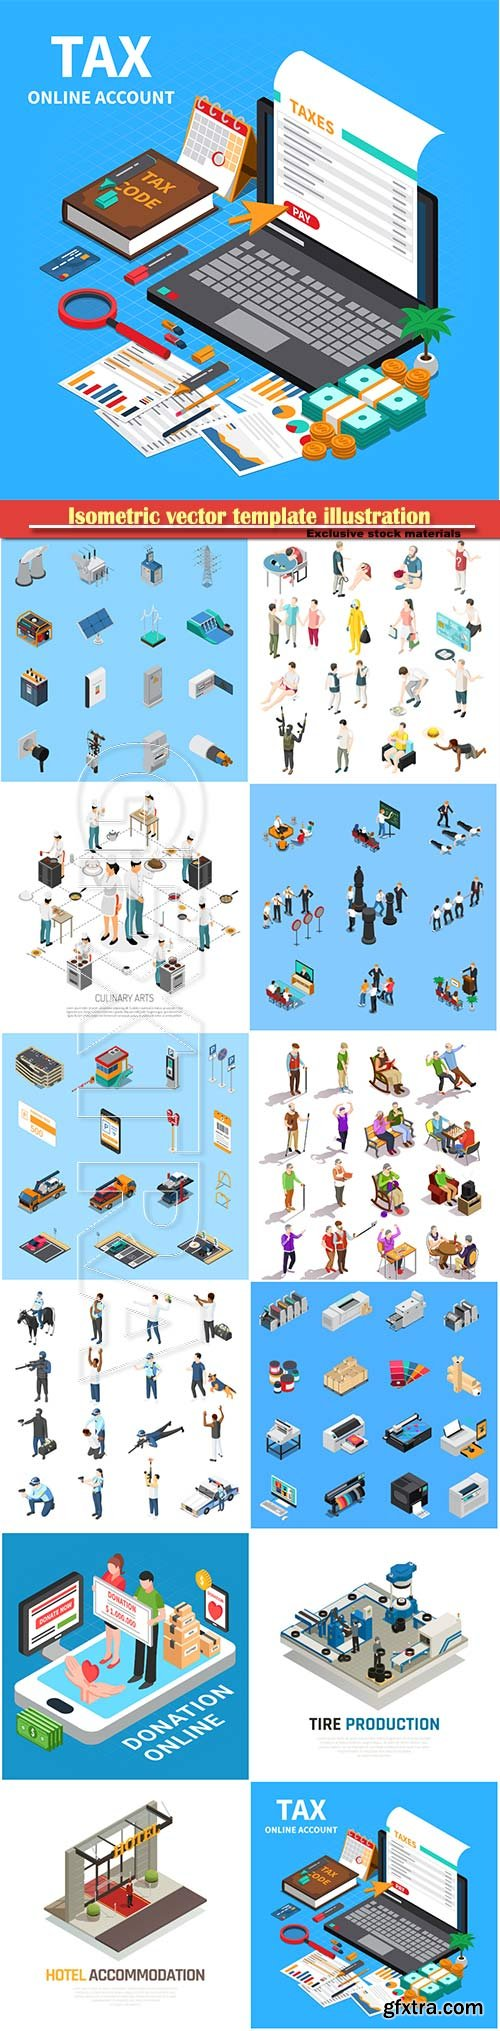 Isometric vector template illustration # 14